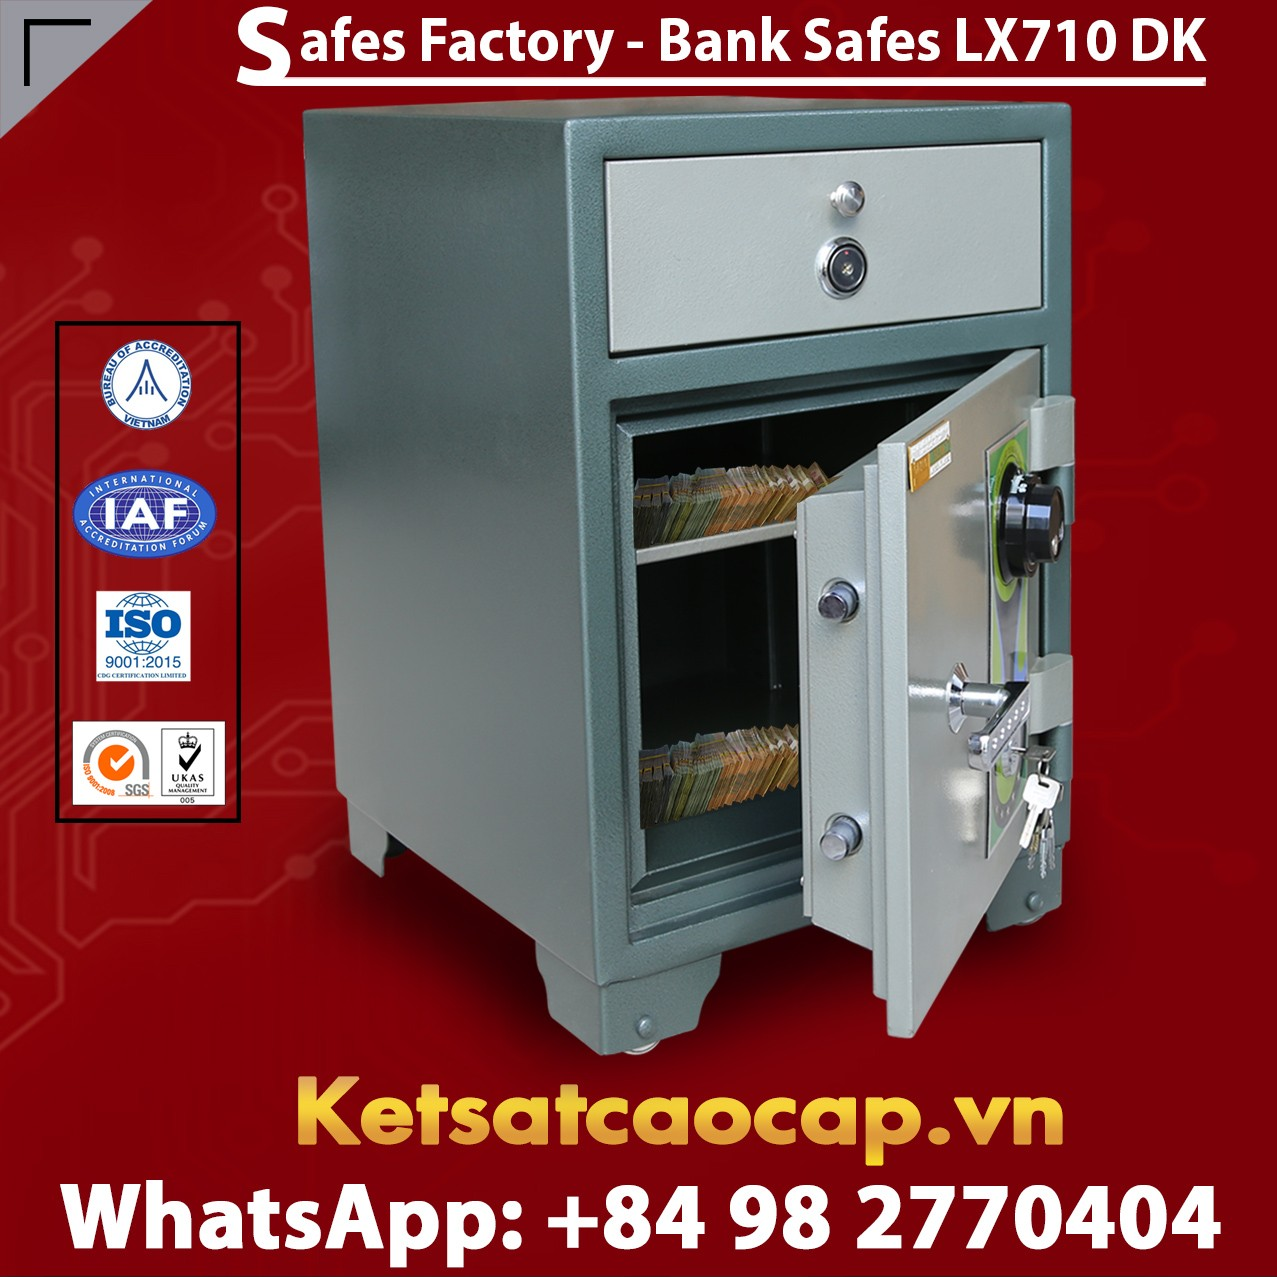 Bank Safes LX710 DK Security Cash Locker Depository Safe Deposit Box